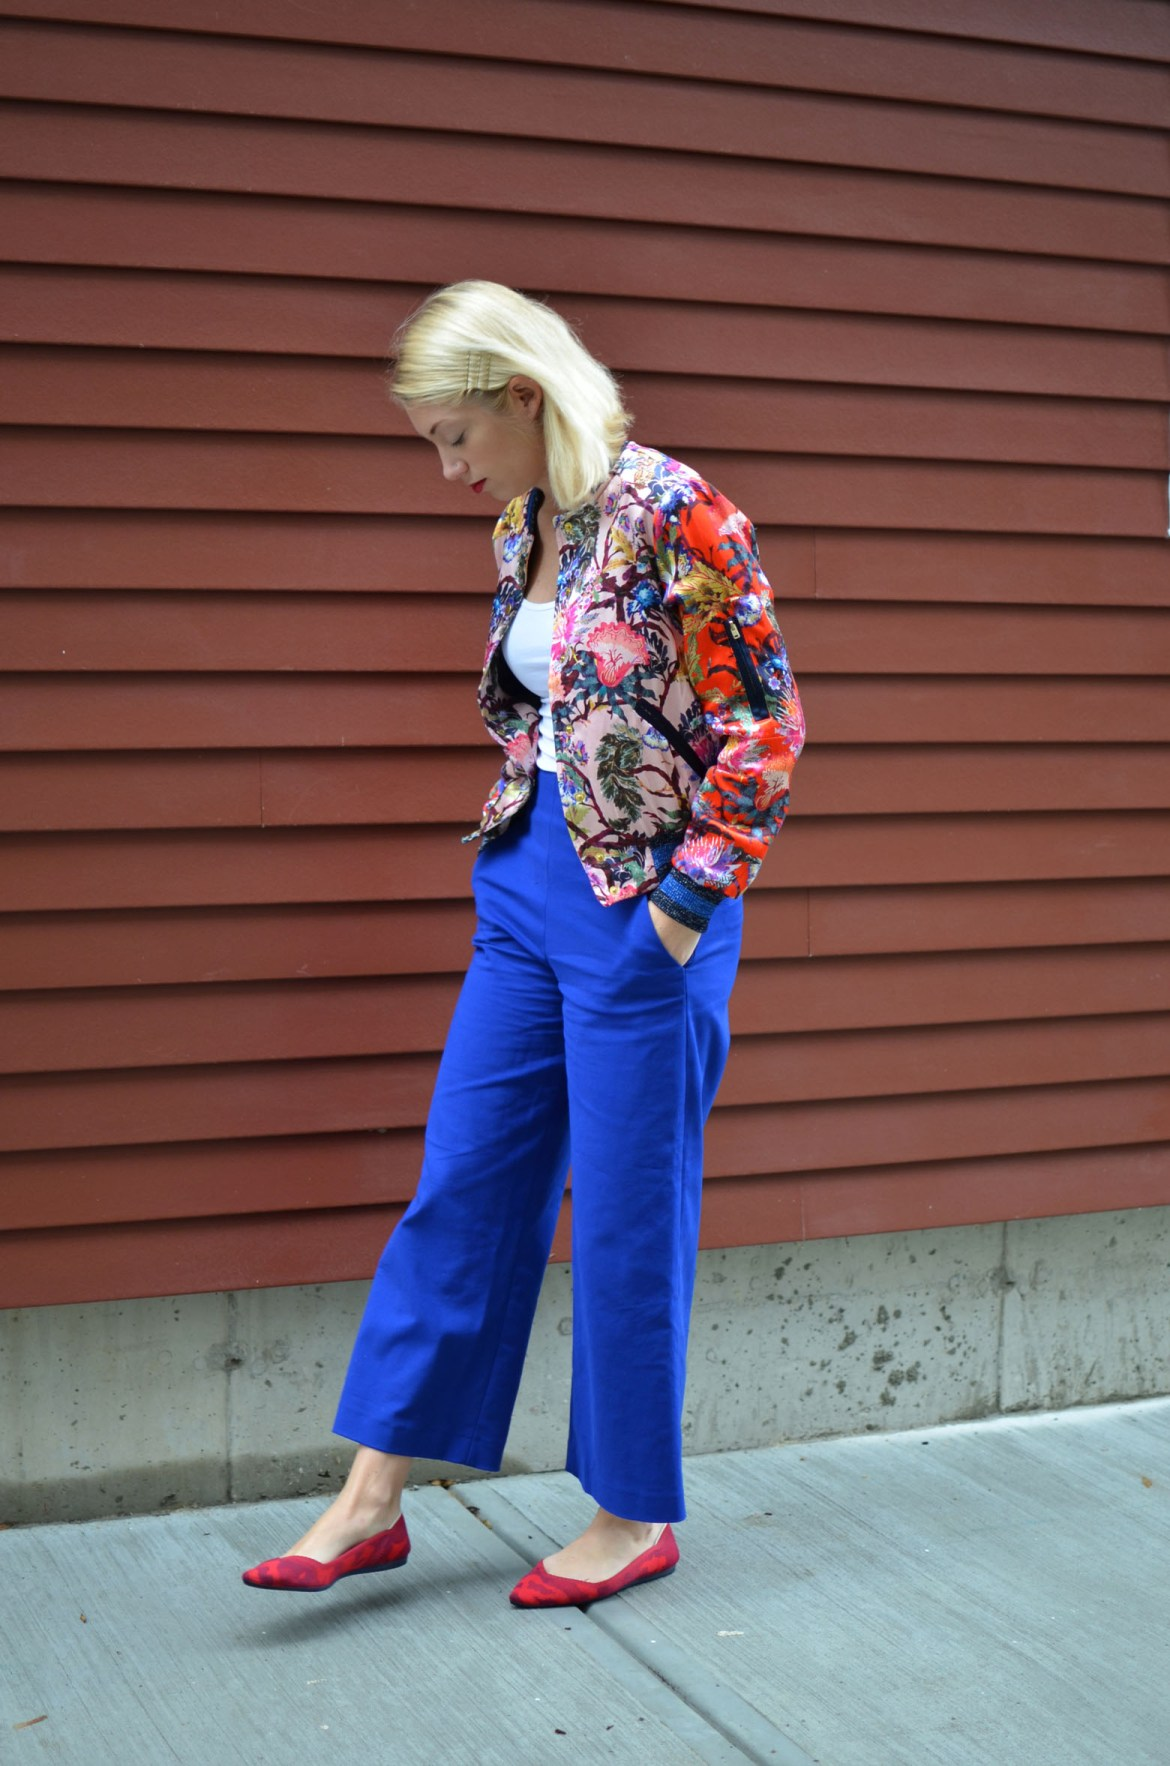 H&M floral bomber, bright clue culottes, red rothy's flats, another way to dress for fall